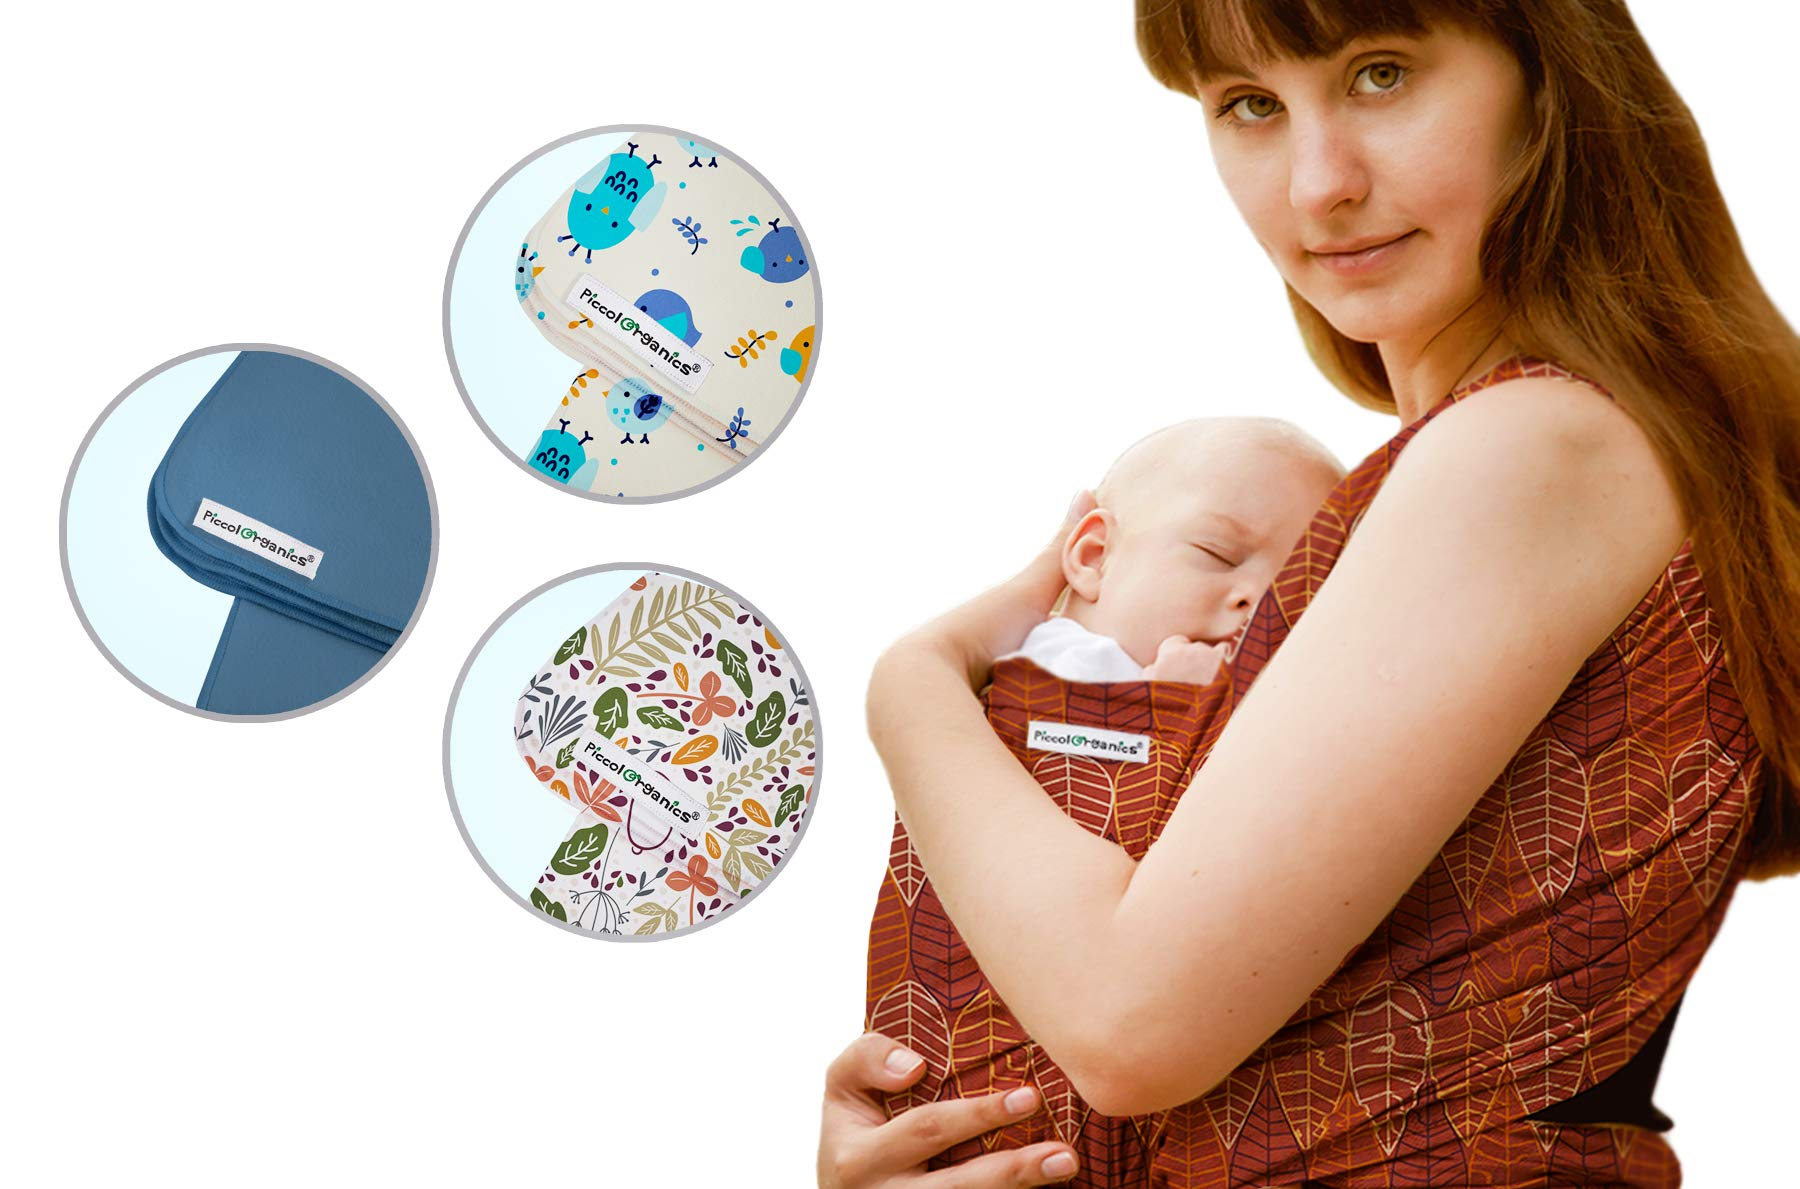 Hypoallergenic GOTS Organic Certified Cotton Baby Wrap Sling Carrier | No Antracene | Certifications: CPSIA, GOTS, CCPA, UK/EU, Safety Tested | Washing & Drying Machine | Newborn | Infant | EU Brand Piccolorganics Certifications: GOTS Organic Cotton, CCPA, CPSIA, CPC, EN 1462. EU/UK Regulation. Weight and resistance certification. For 6lb/2.7kg - 35 lbs/16kg - For Newborns up to 2 years old. European Brand. 520cm x 55cm The PiccolOrganics organic baby wraps are manufactured with premium materials to ensure years of use, through repeated washes and drying cycles. Even better, you can use it in the Washing and Drying machine! 1